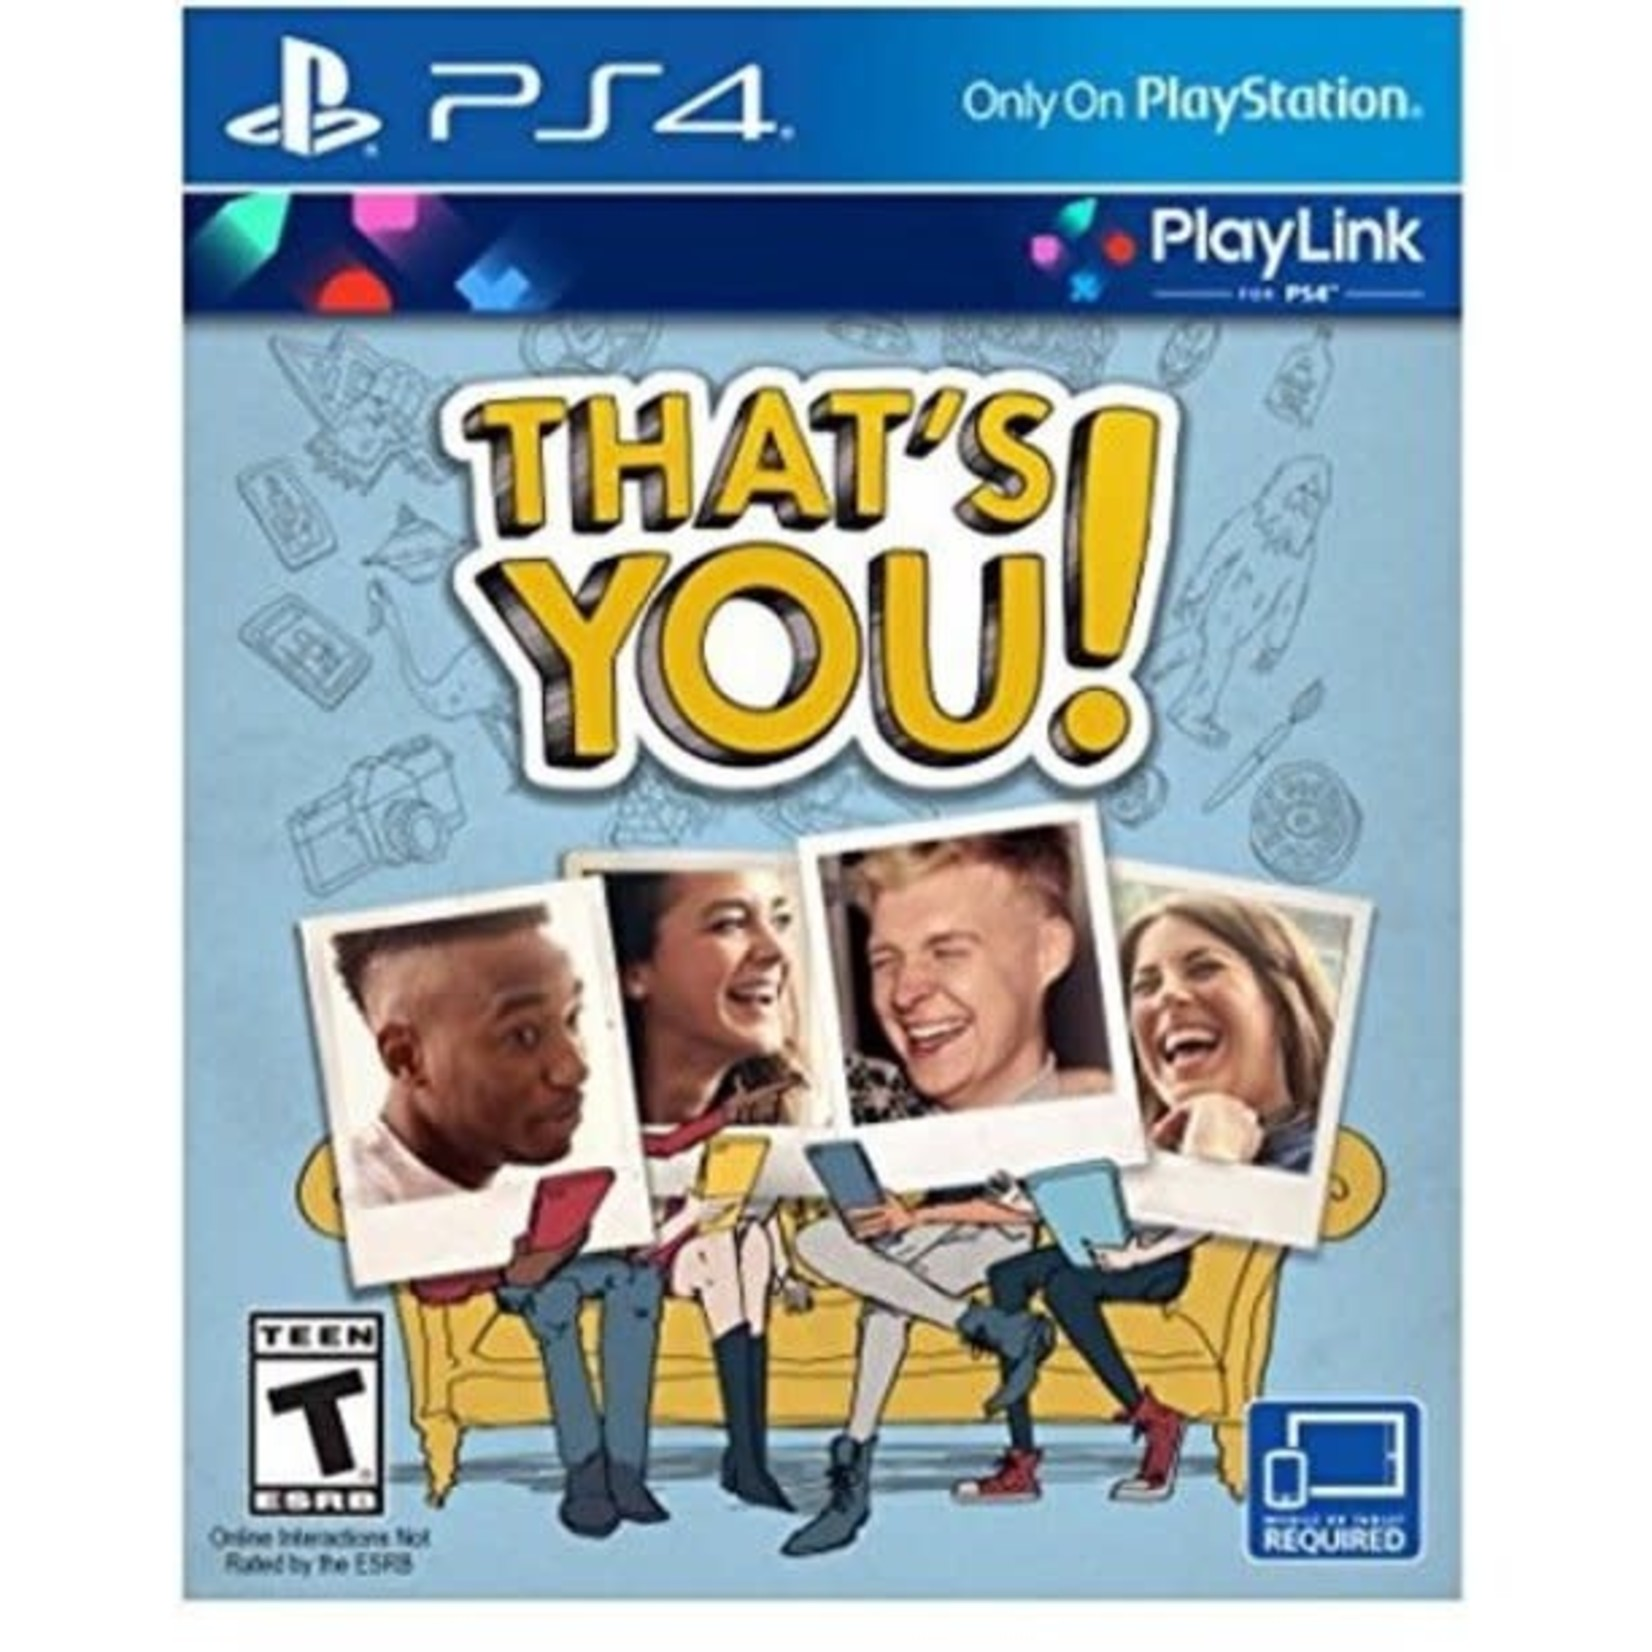 ps4u-That's You